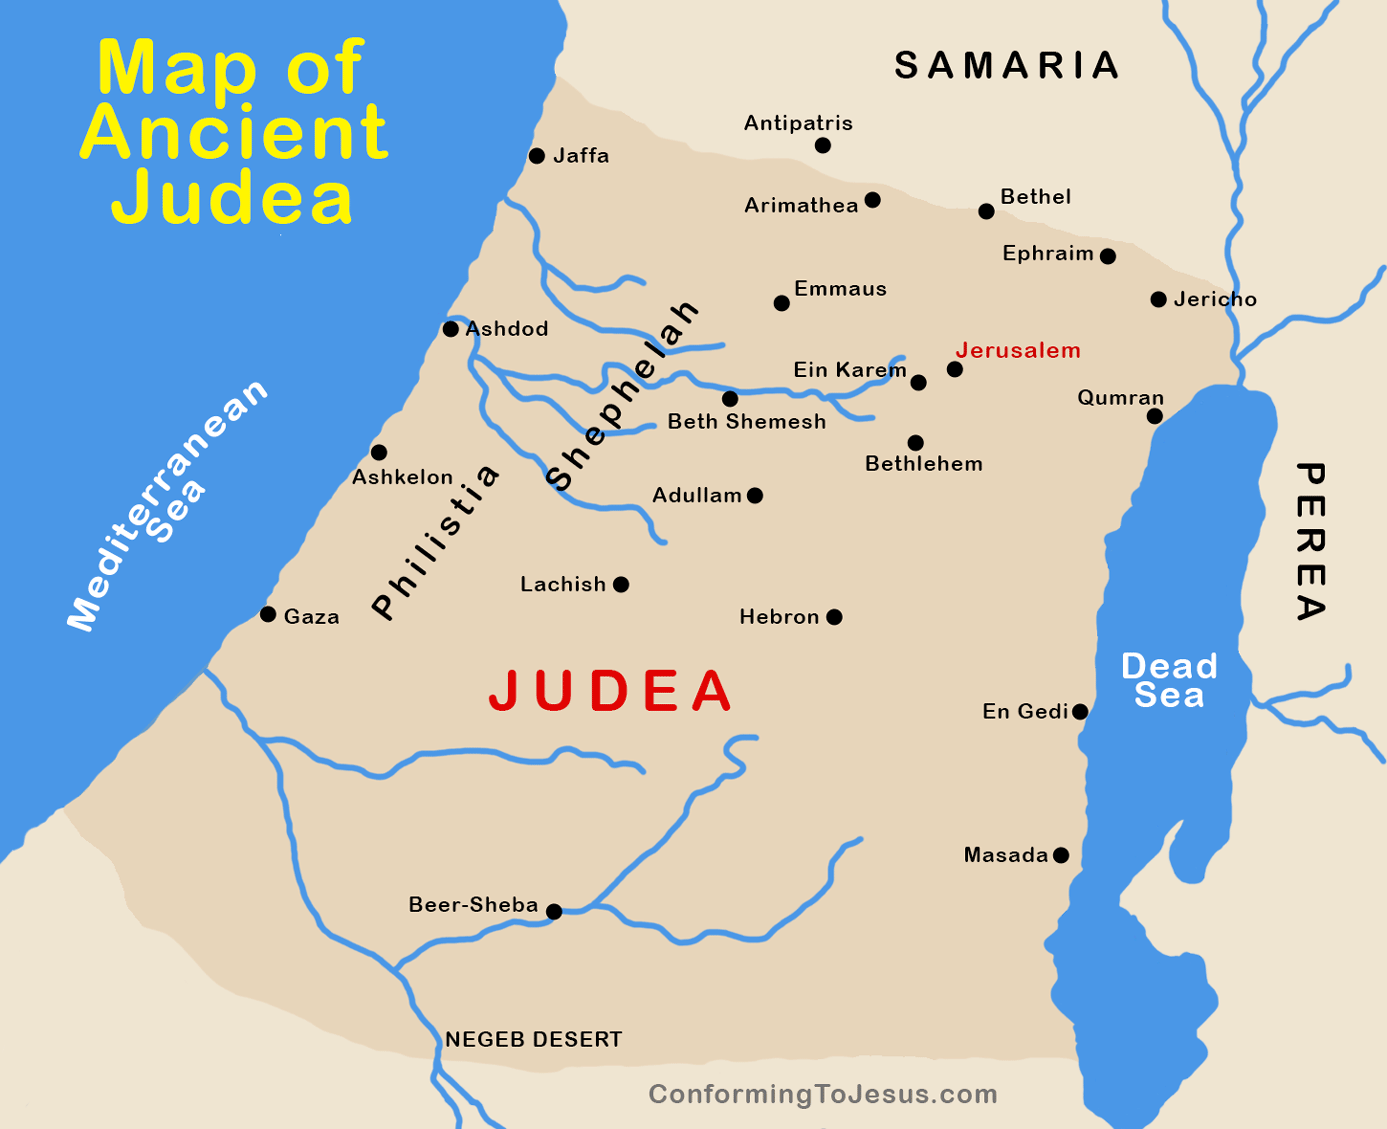 Map of Ancient Roman Judea Map of Judea at the time of Jesus